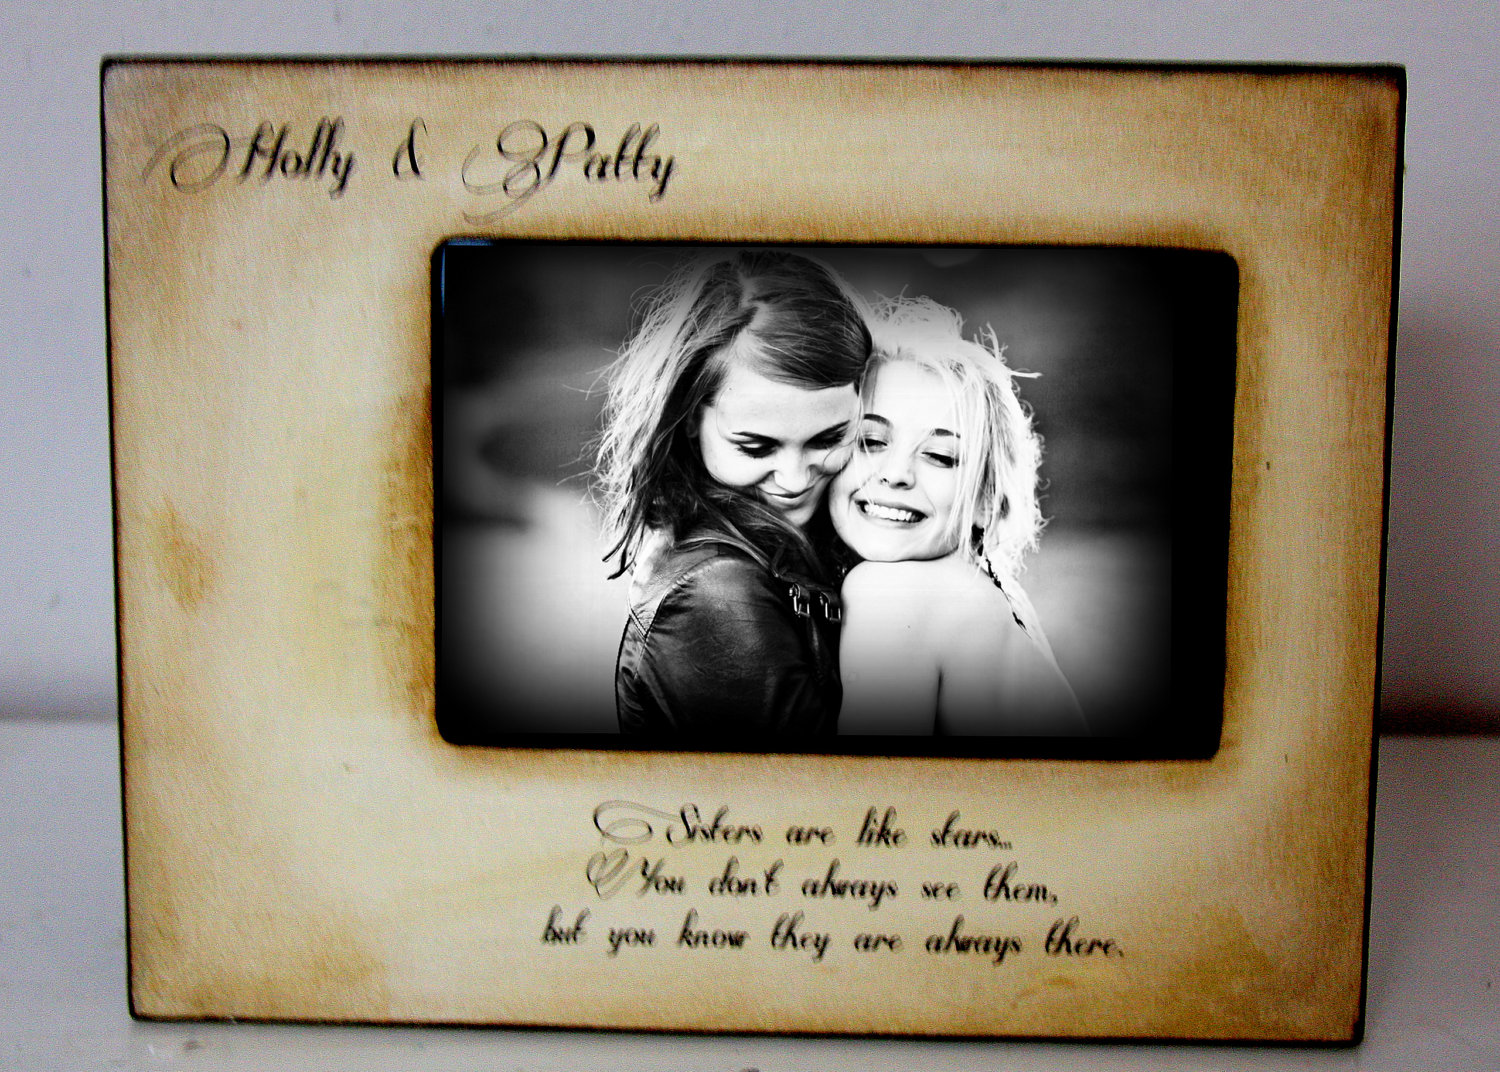 happy birthday brother photo frame ; bded8d76b36205b4207c57a4f97a0336